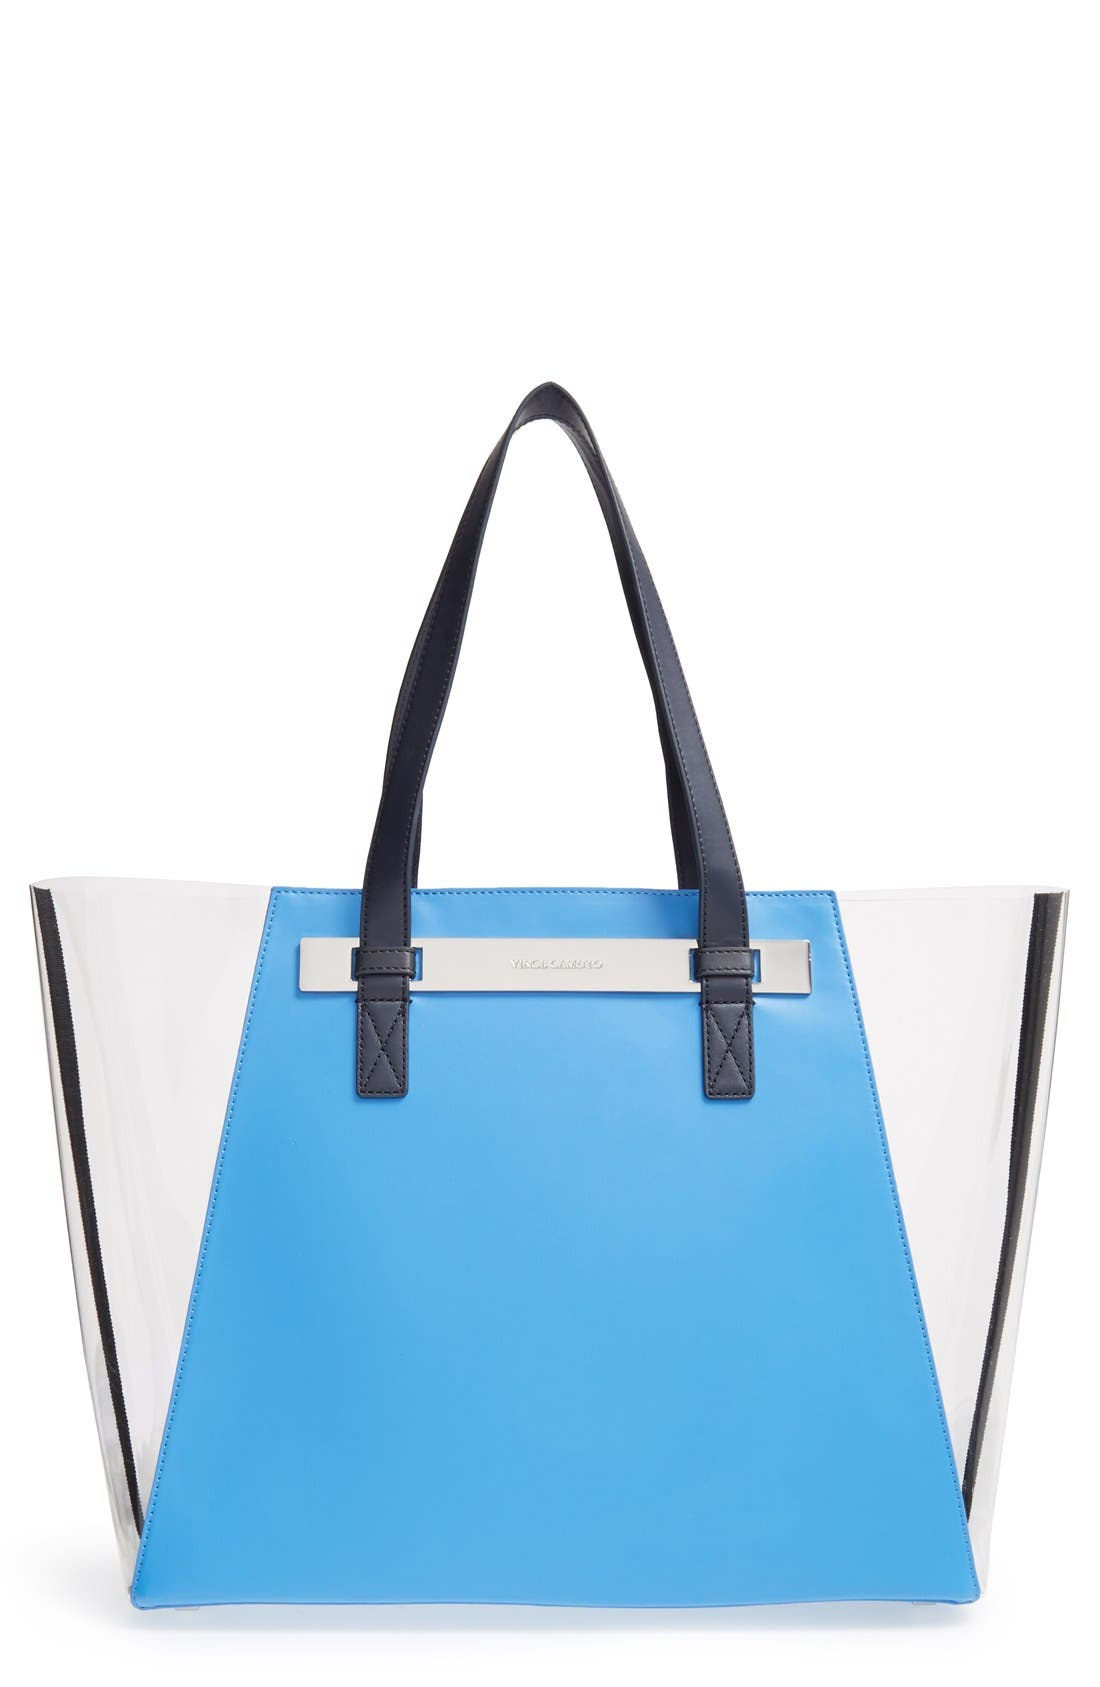 Alternate Image 1 Selected - Vince Camuto 'Jace' Tote